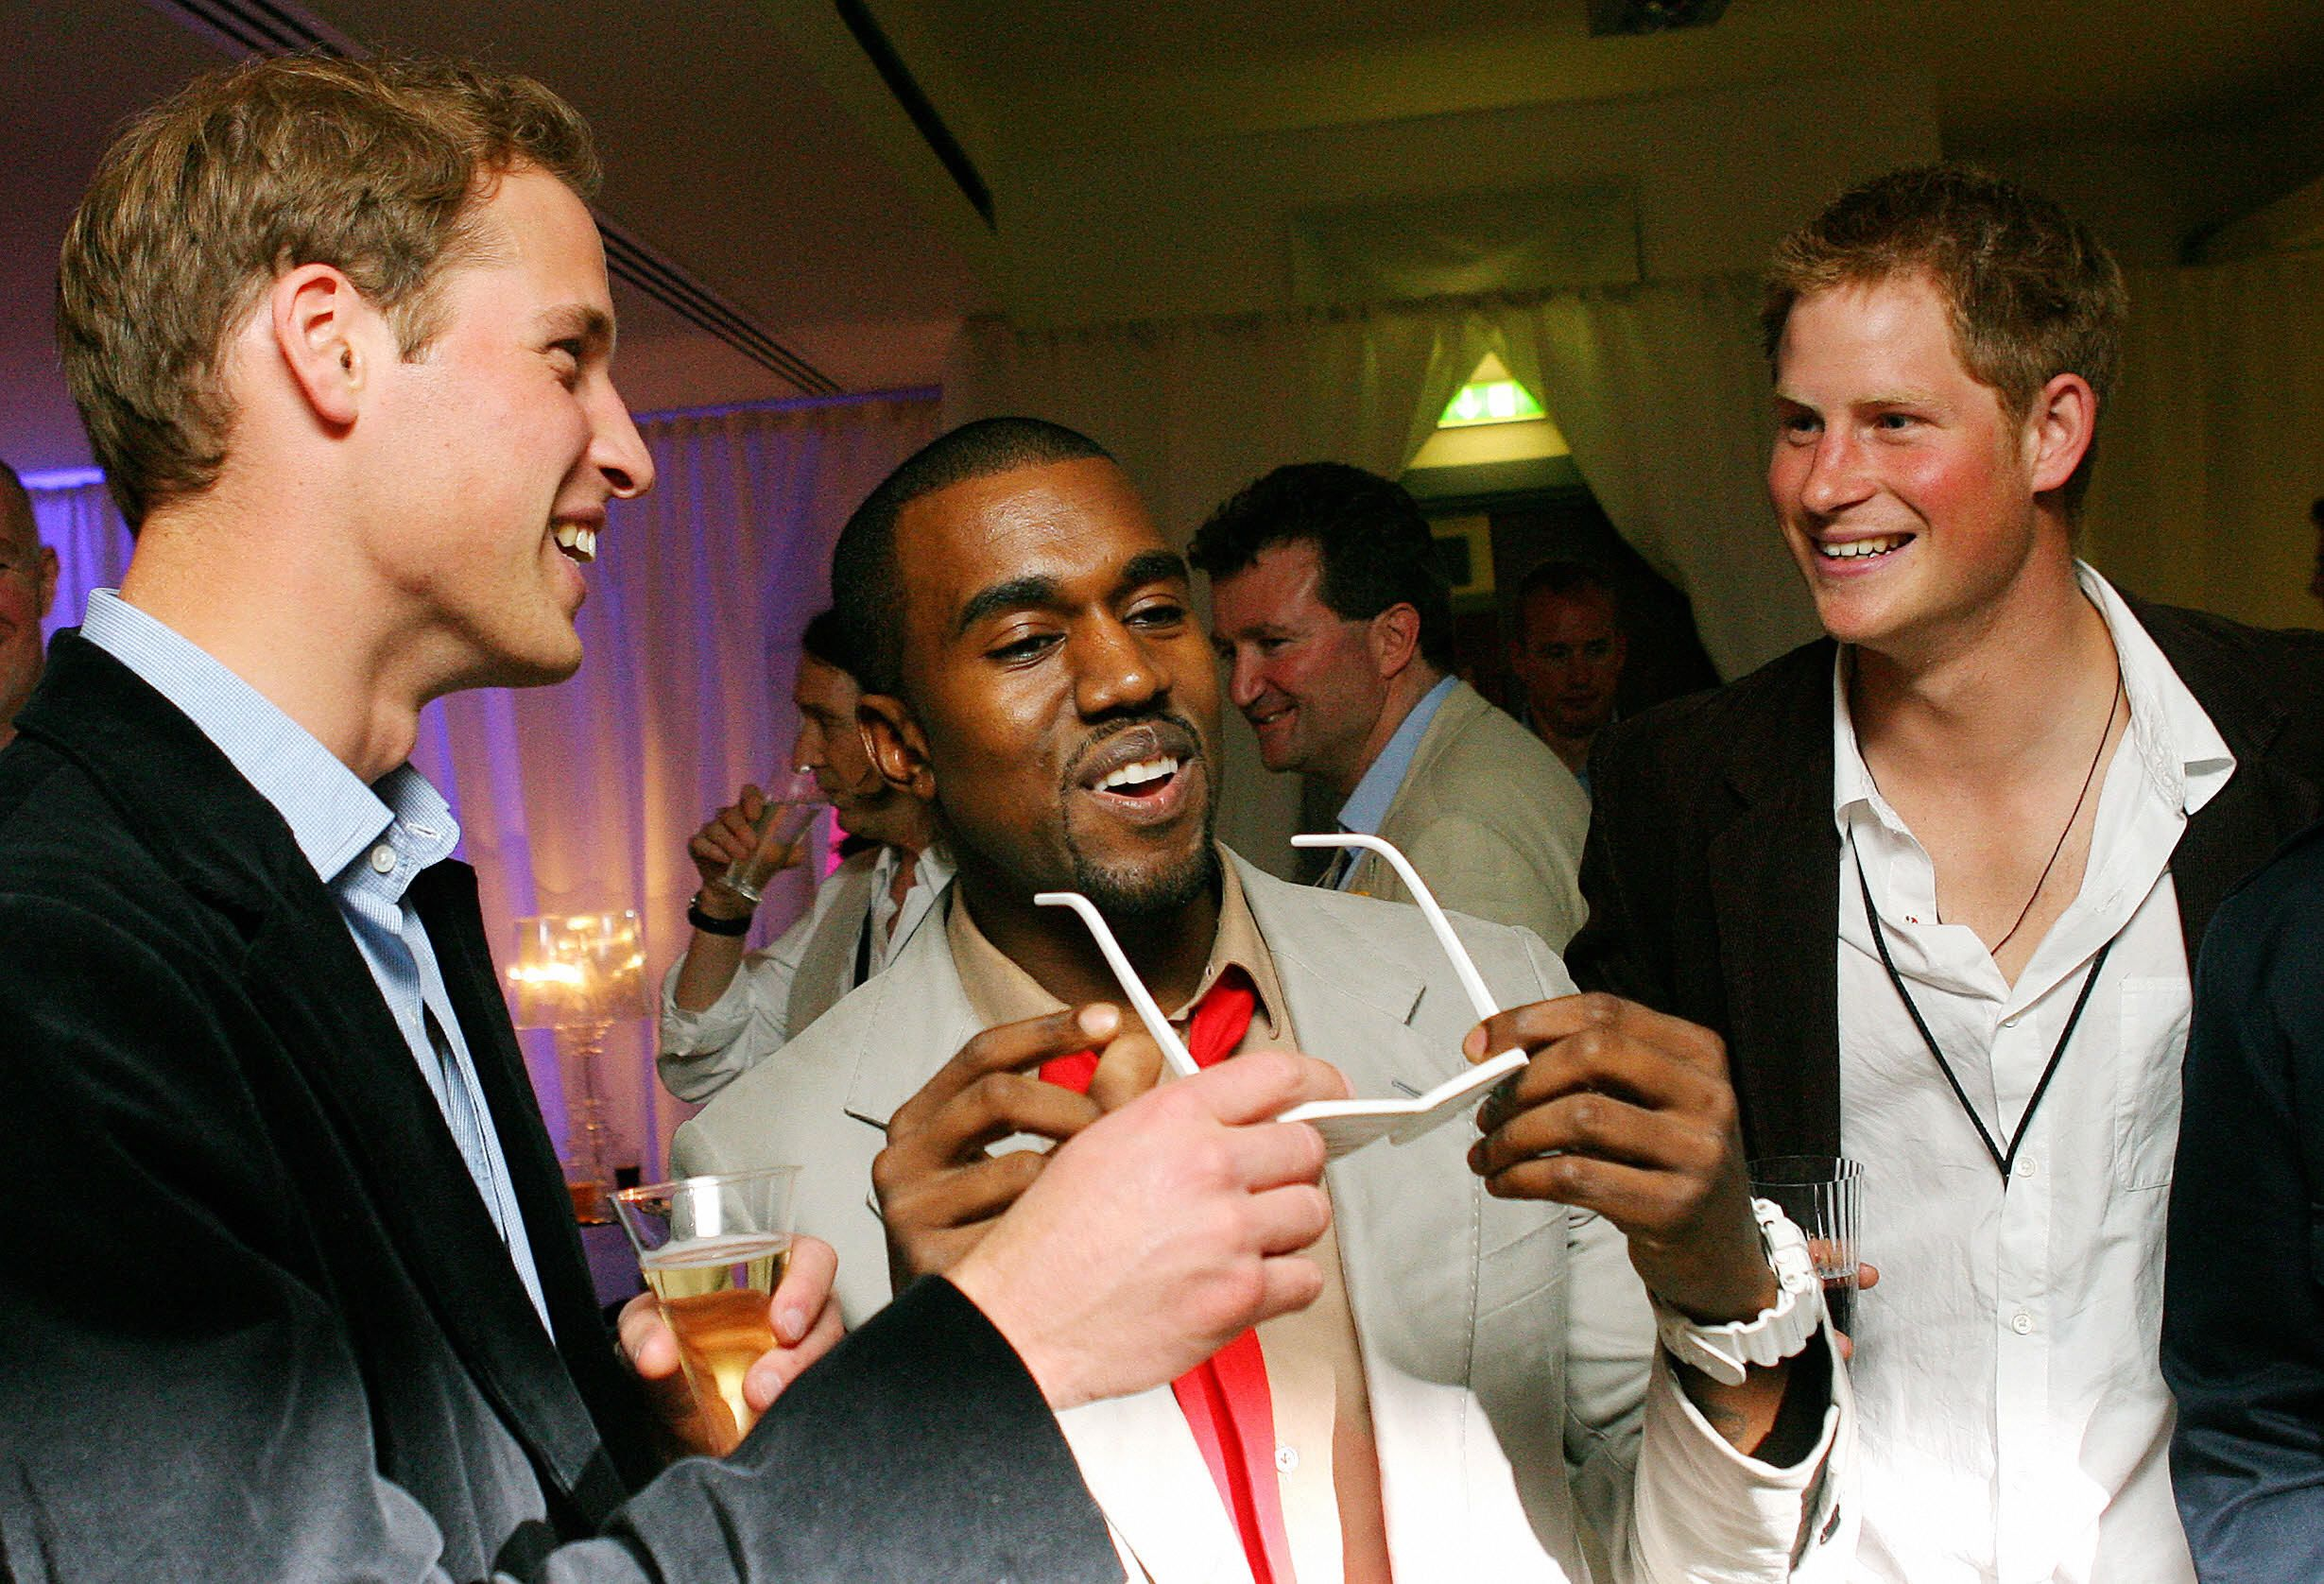 Prince William and Prince Harry's Cutest Moments Together